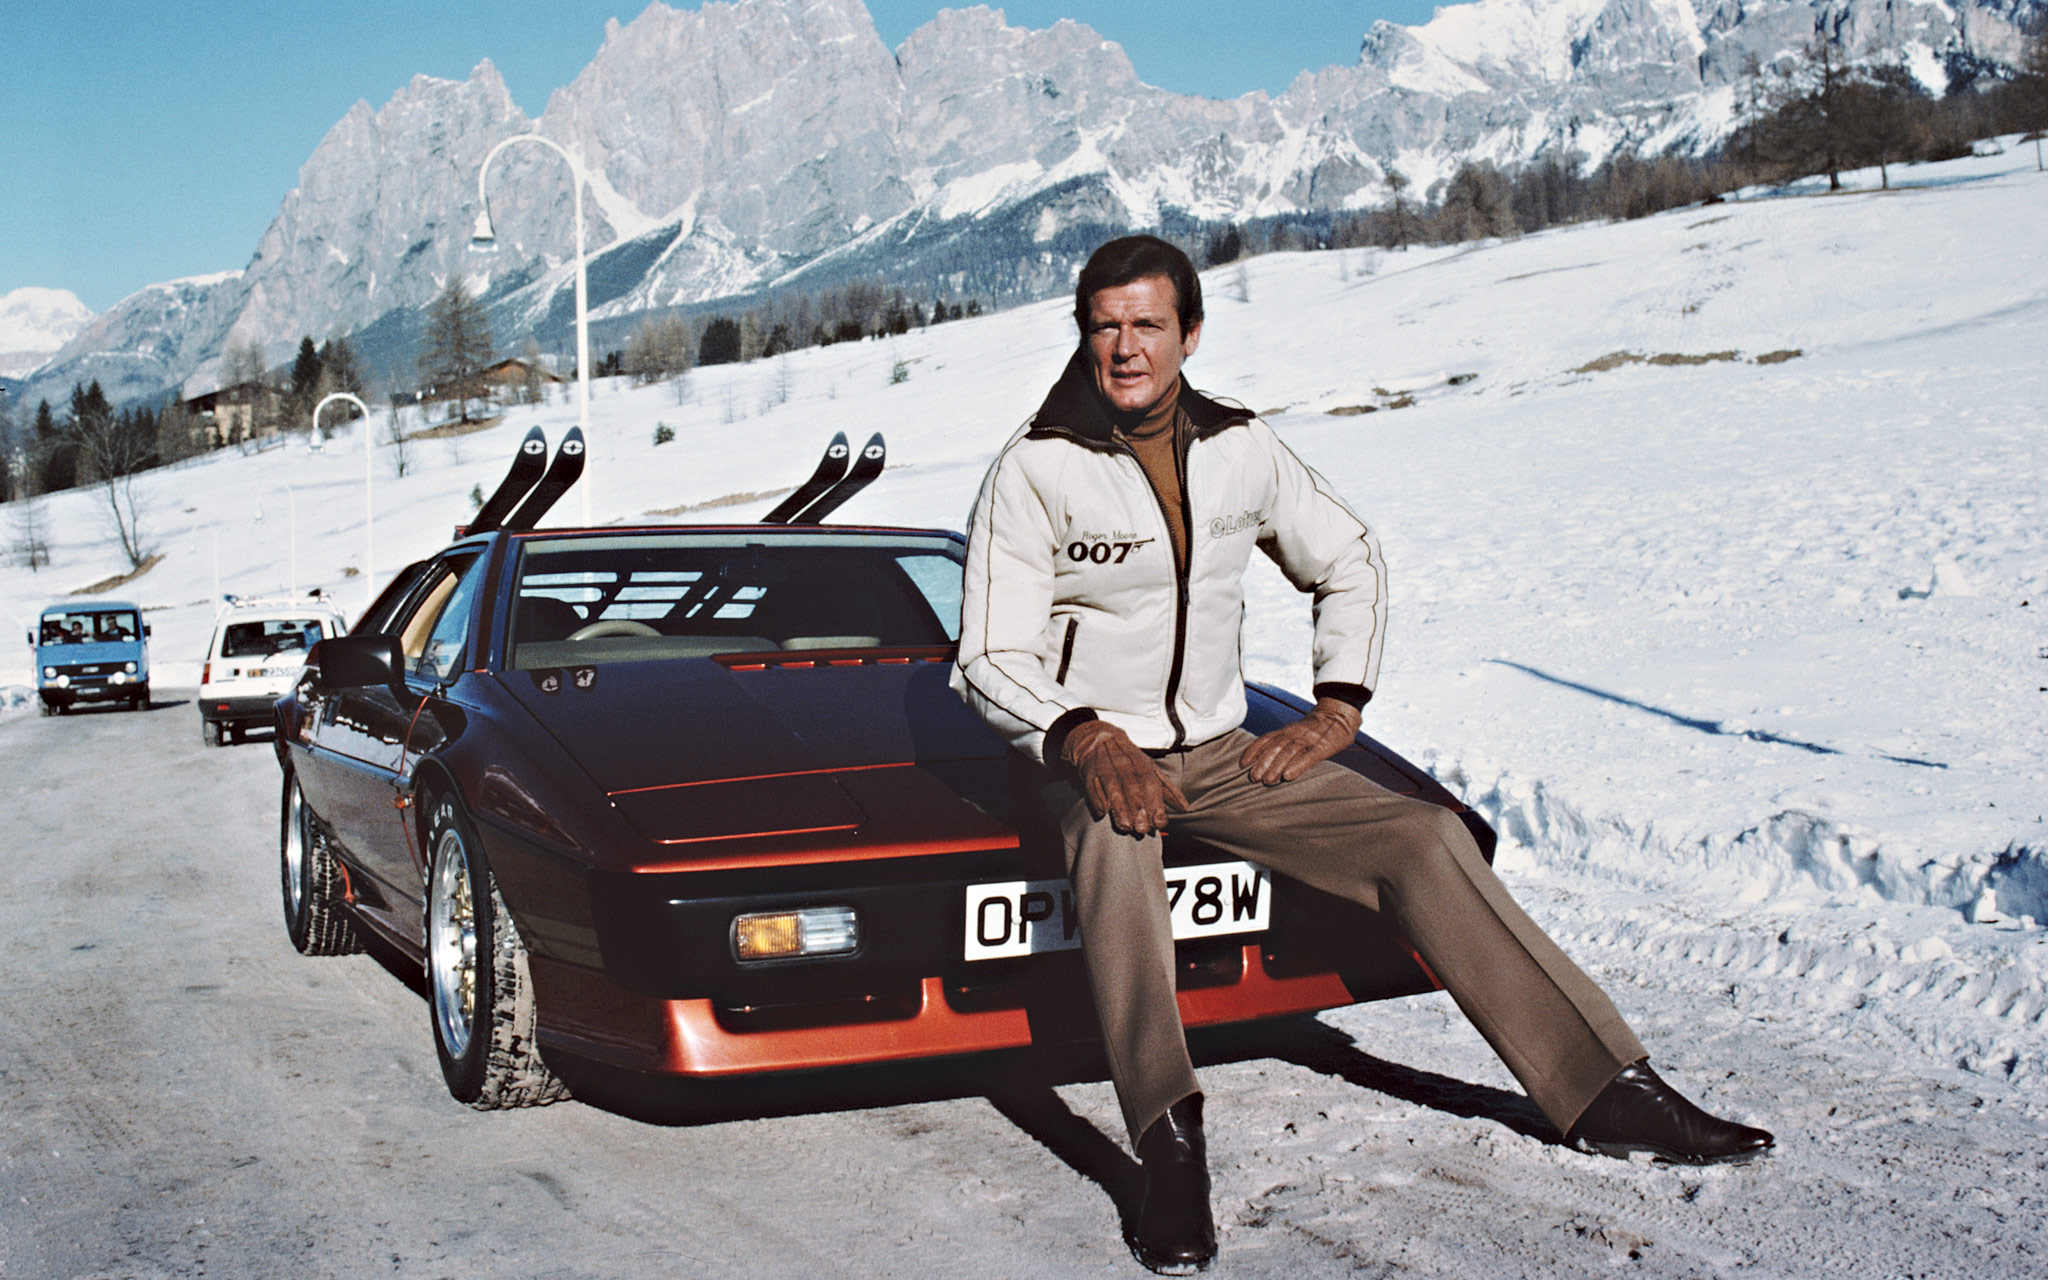 Roger Moore as James Bond astride a Lotus Esprit Turbo